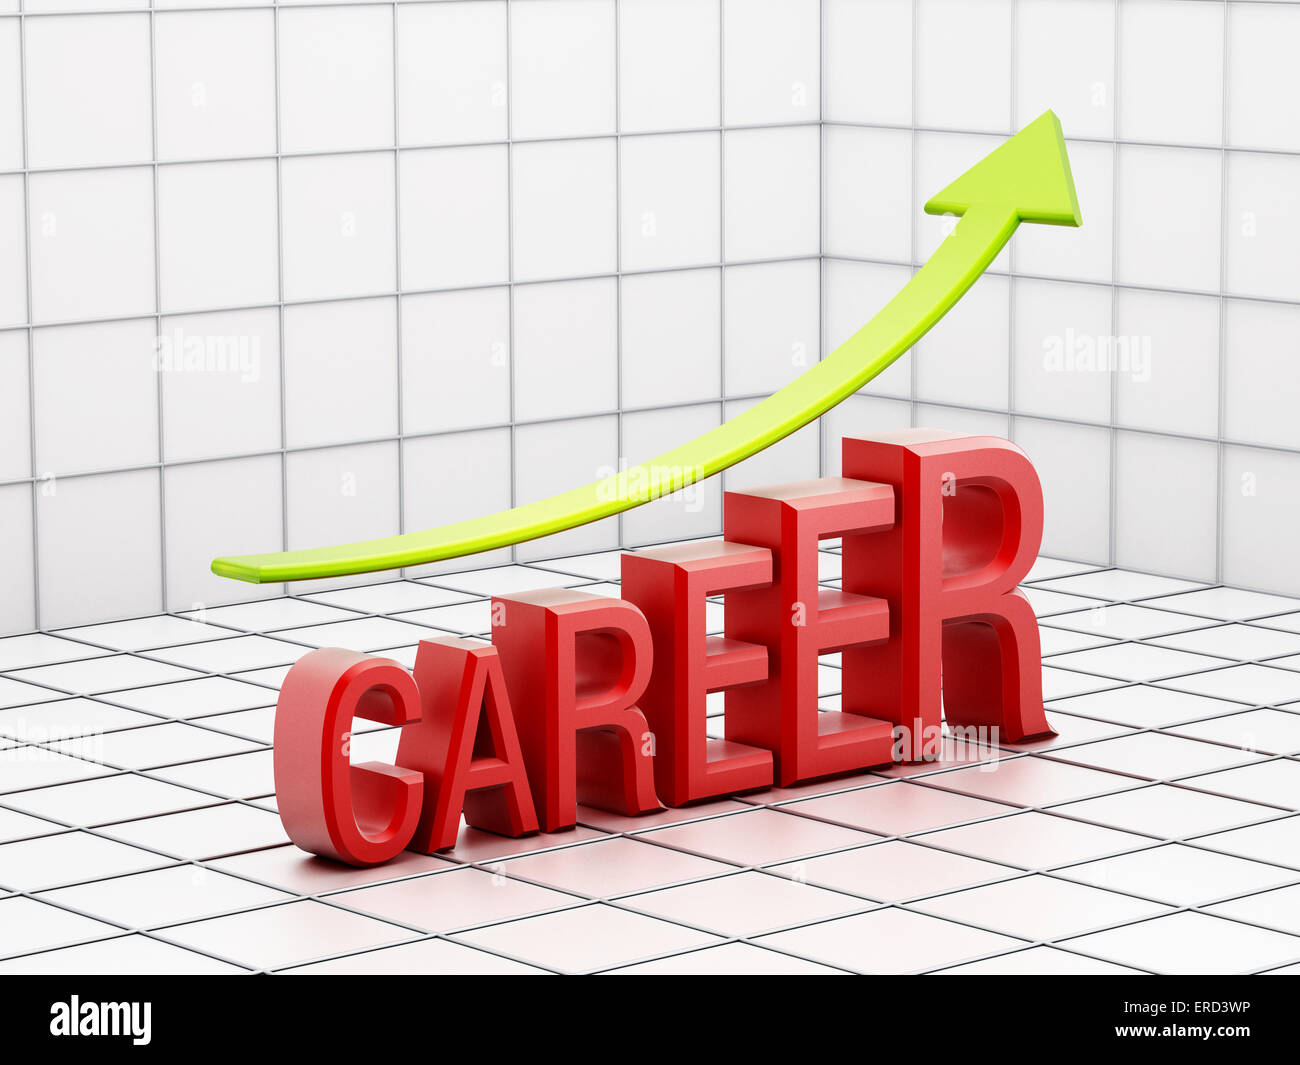 Rising career success wit text and arrow - Stock Image